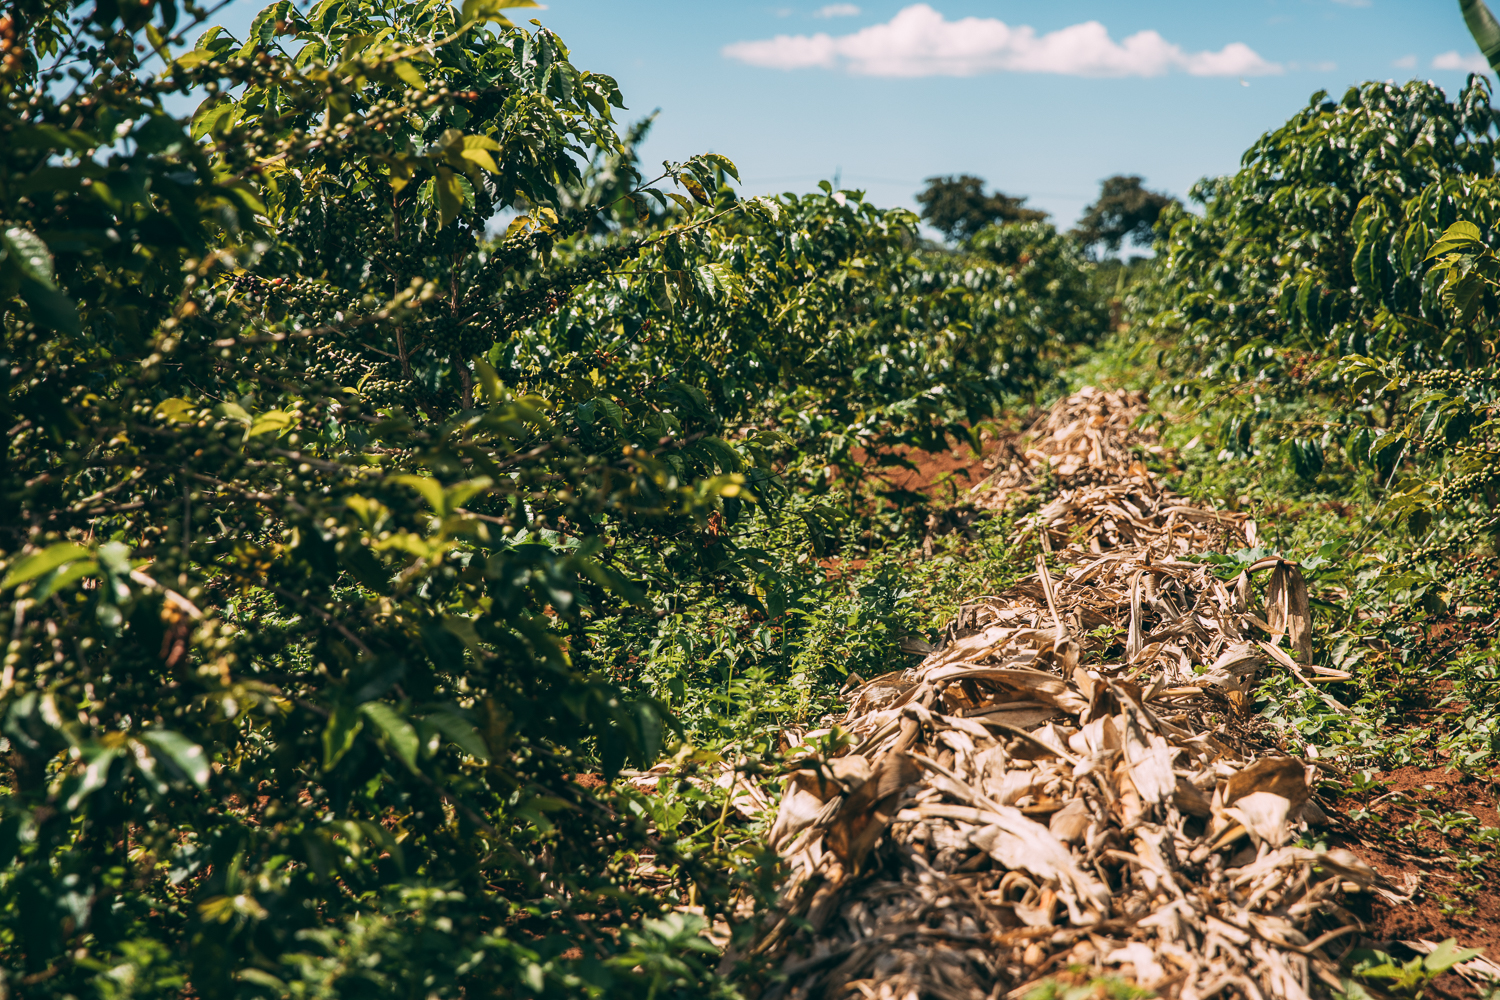 Coverf crops mitigate the impact of climate change on coffee